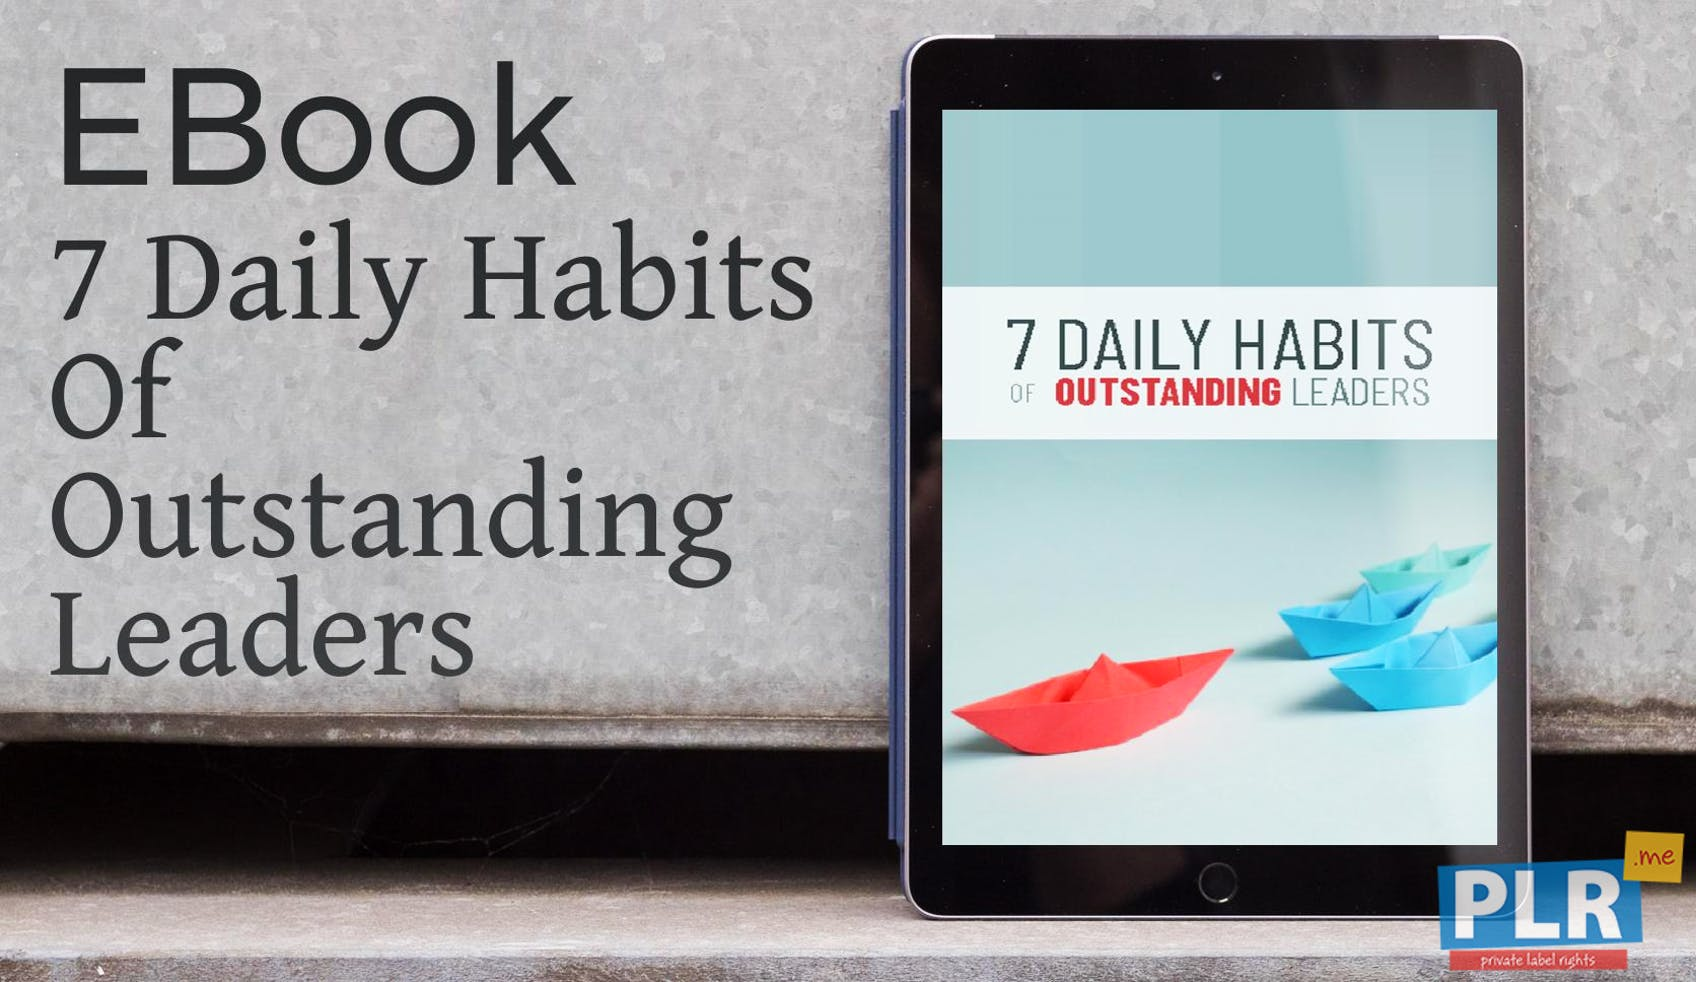 7 Daily Habits Of Outstanding Leaders